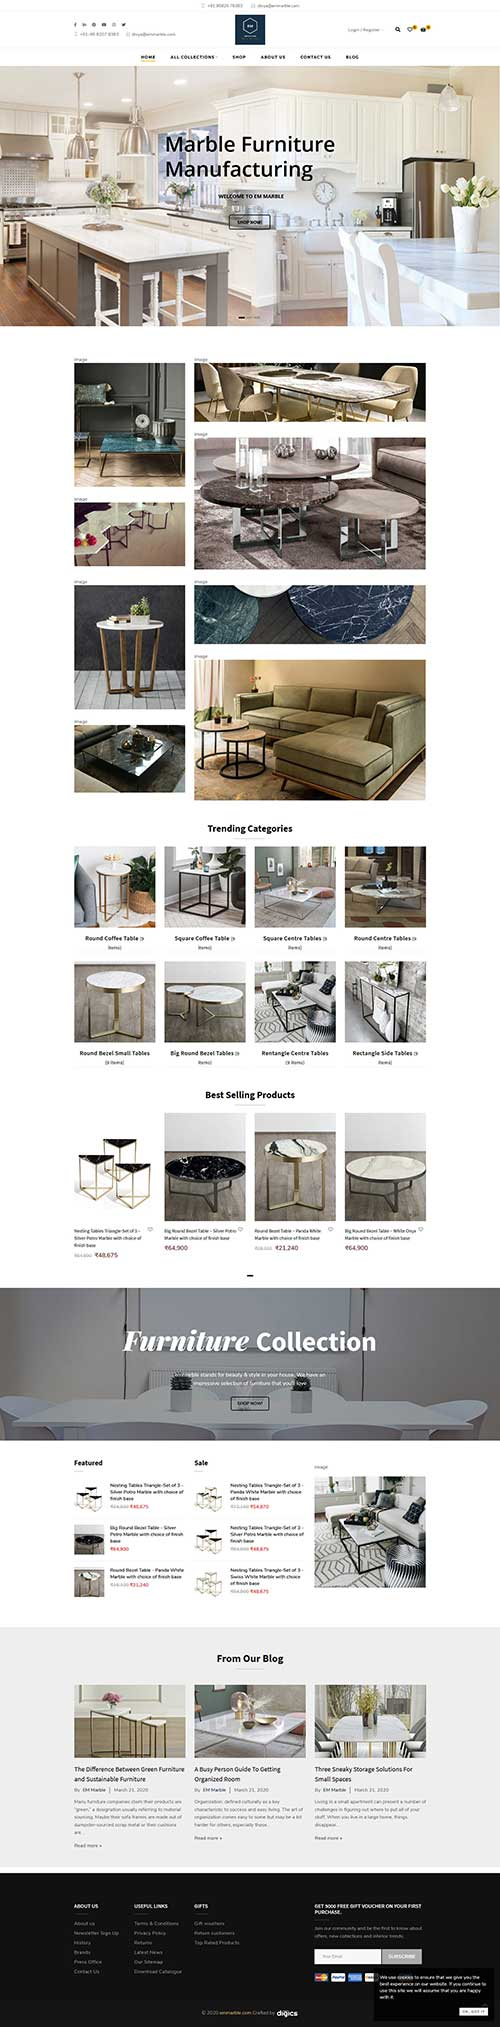 EM Marble Tables specialize in Furniture Manufacturing